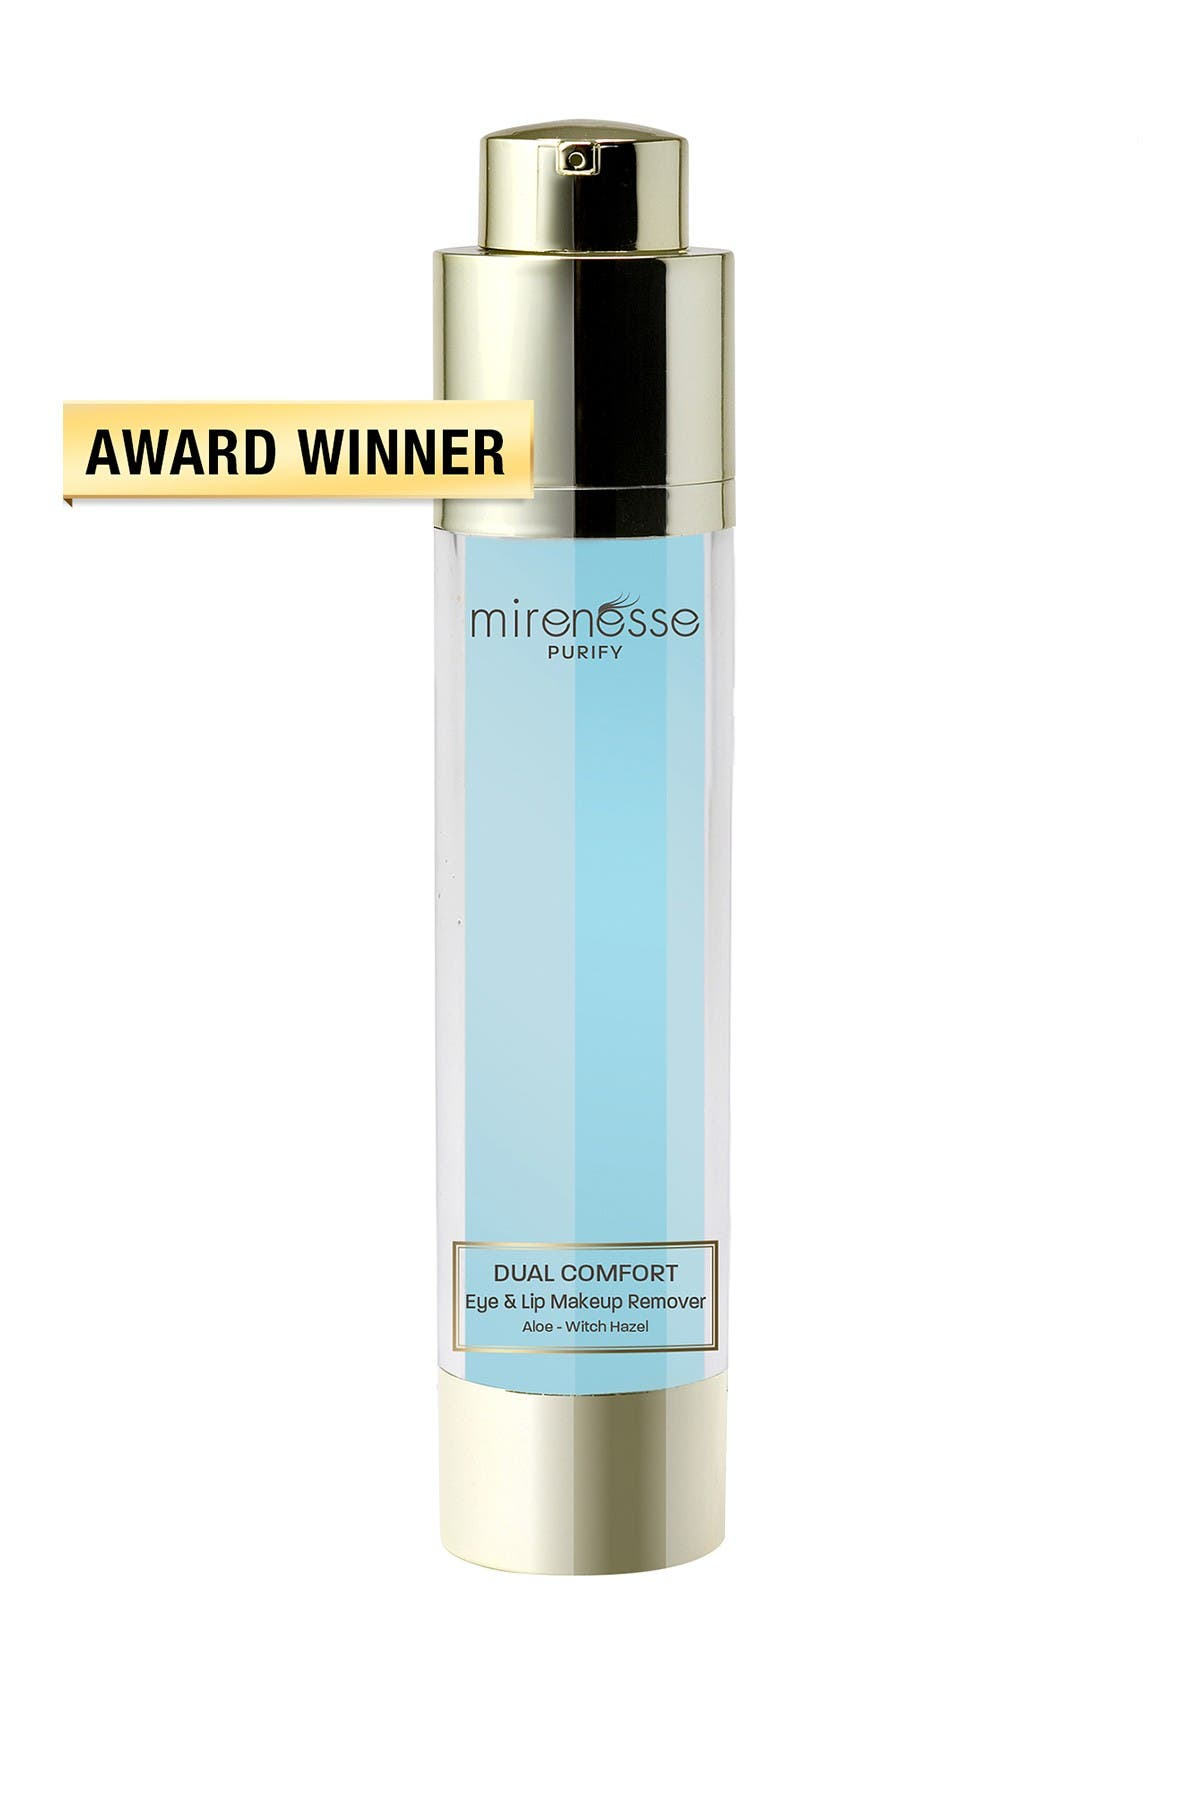 Image of Mirenesse Purify Eye & Lip Makeup Remover